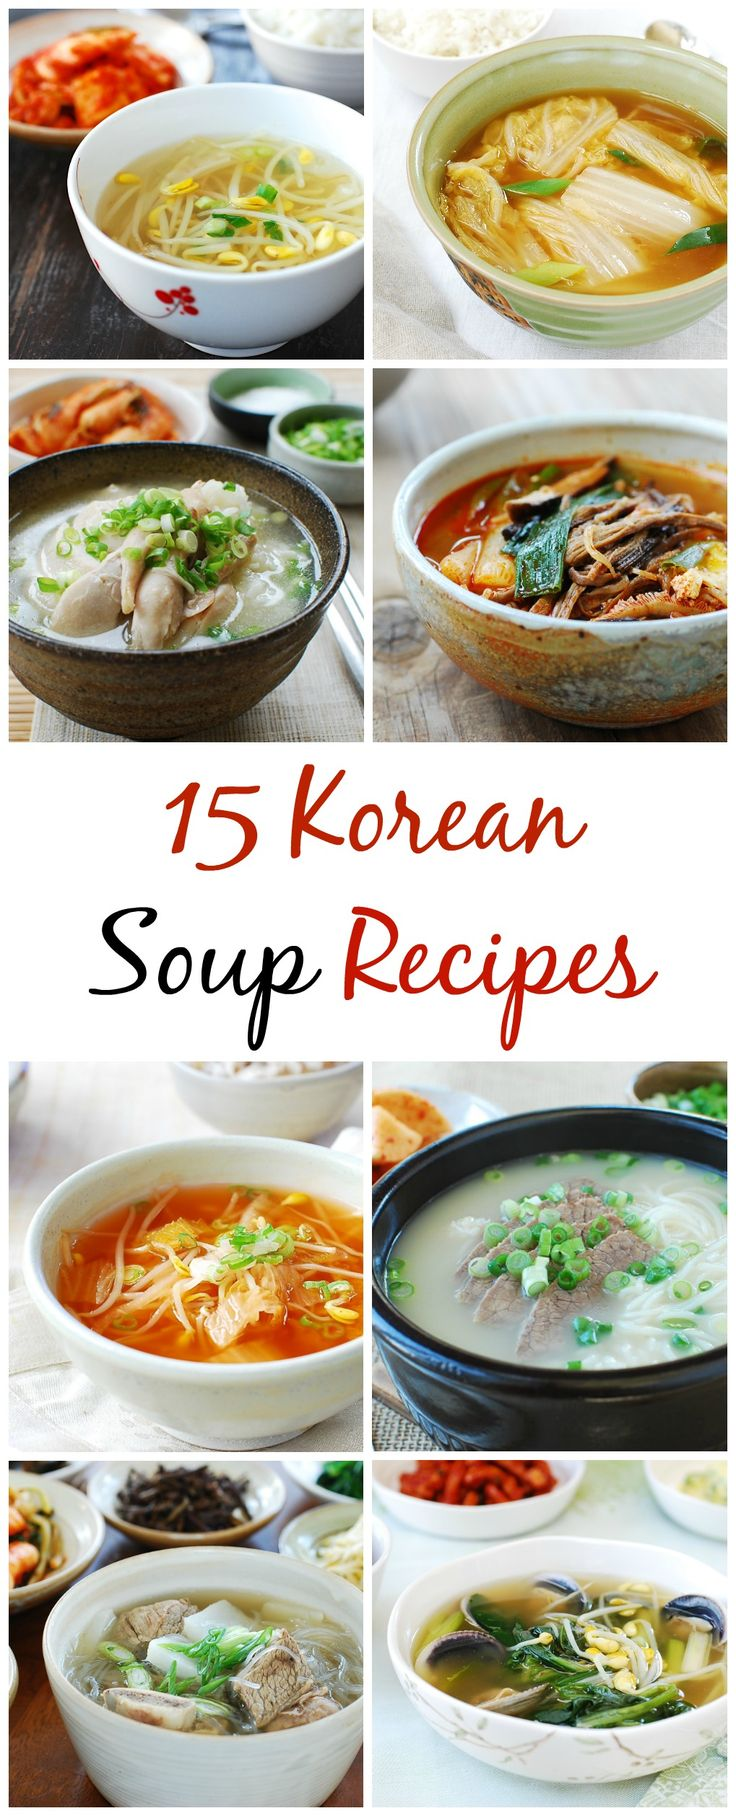 15 Korean Soup Recipes!